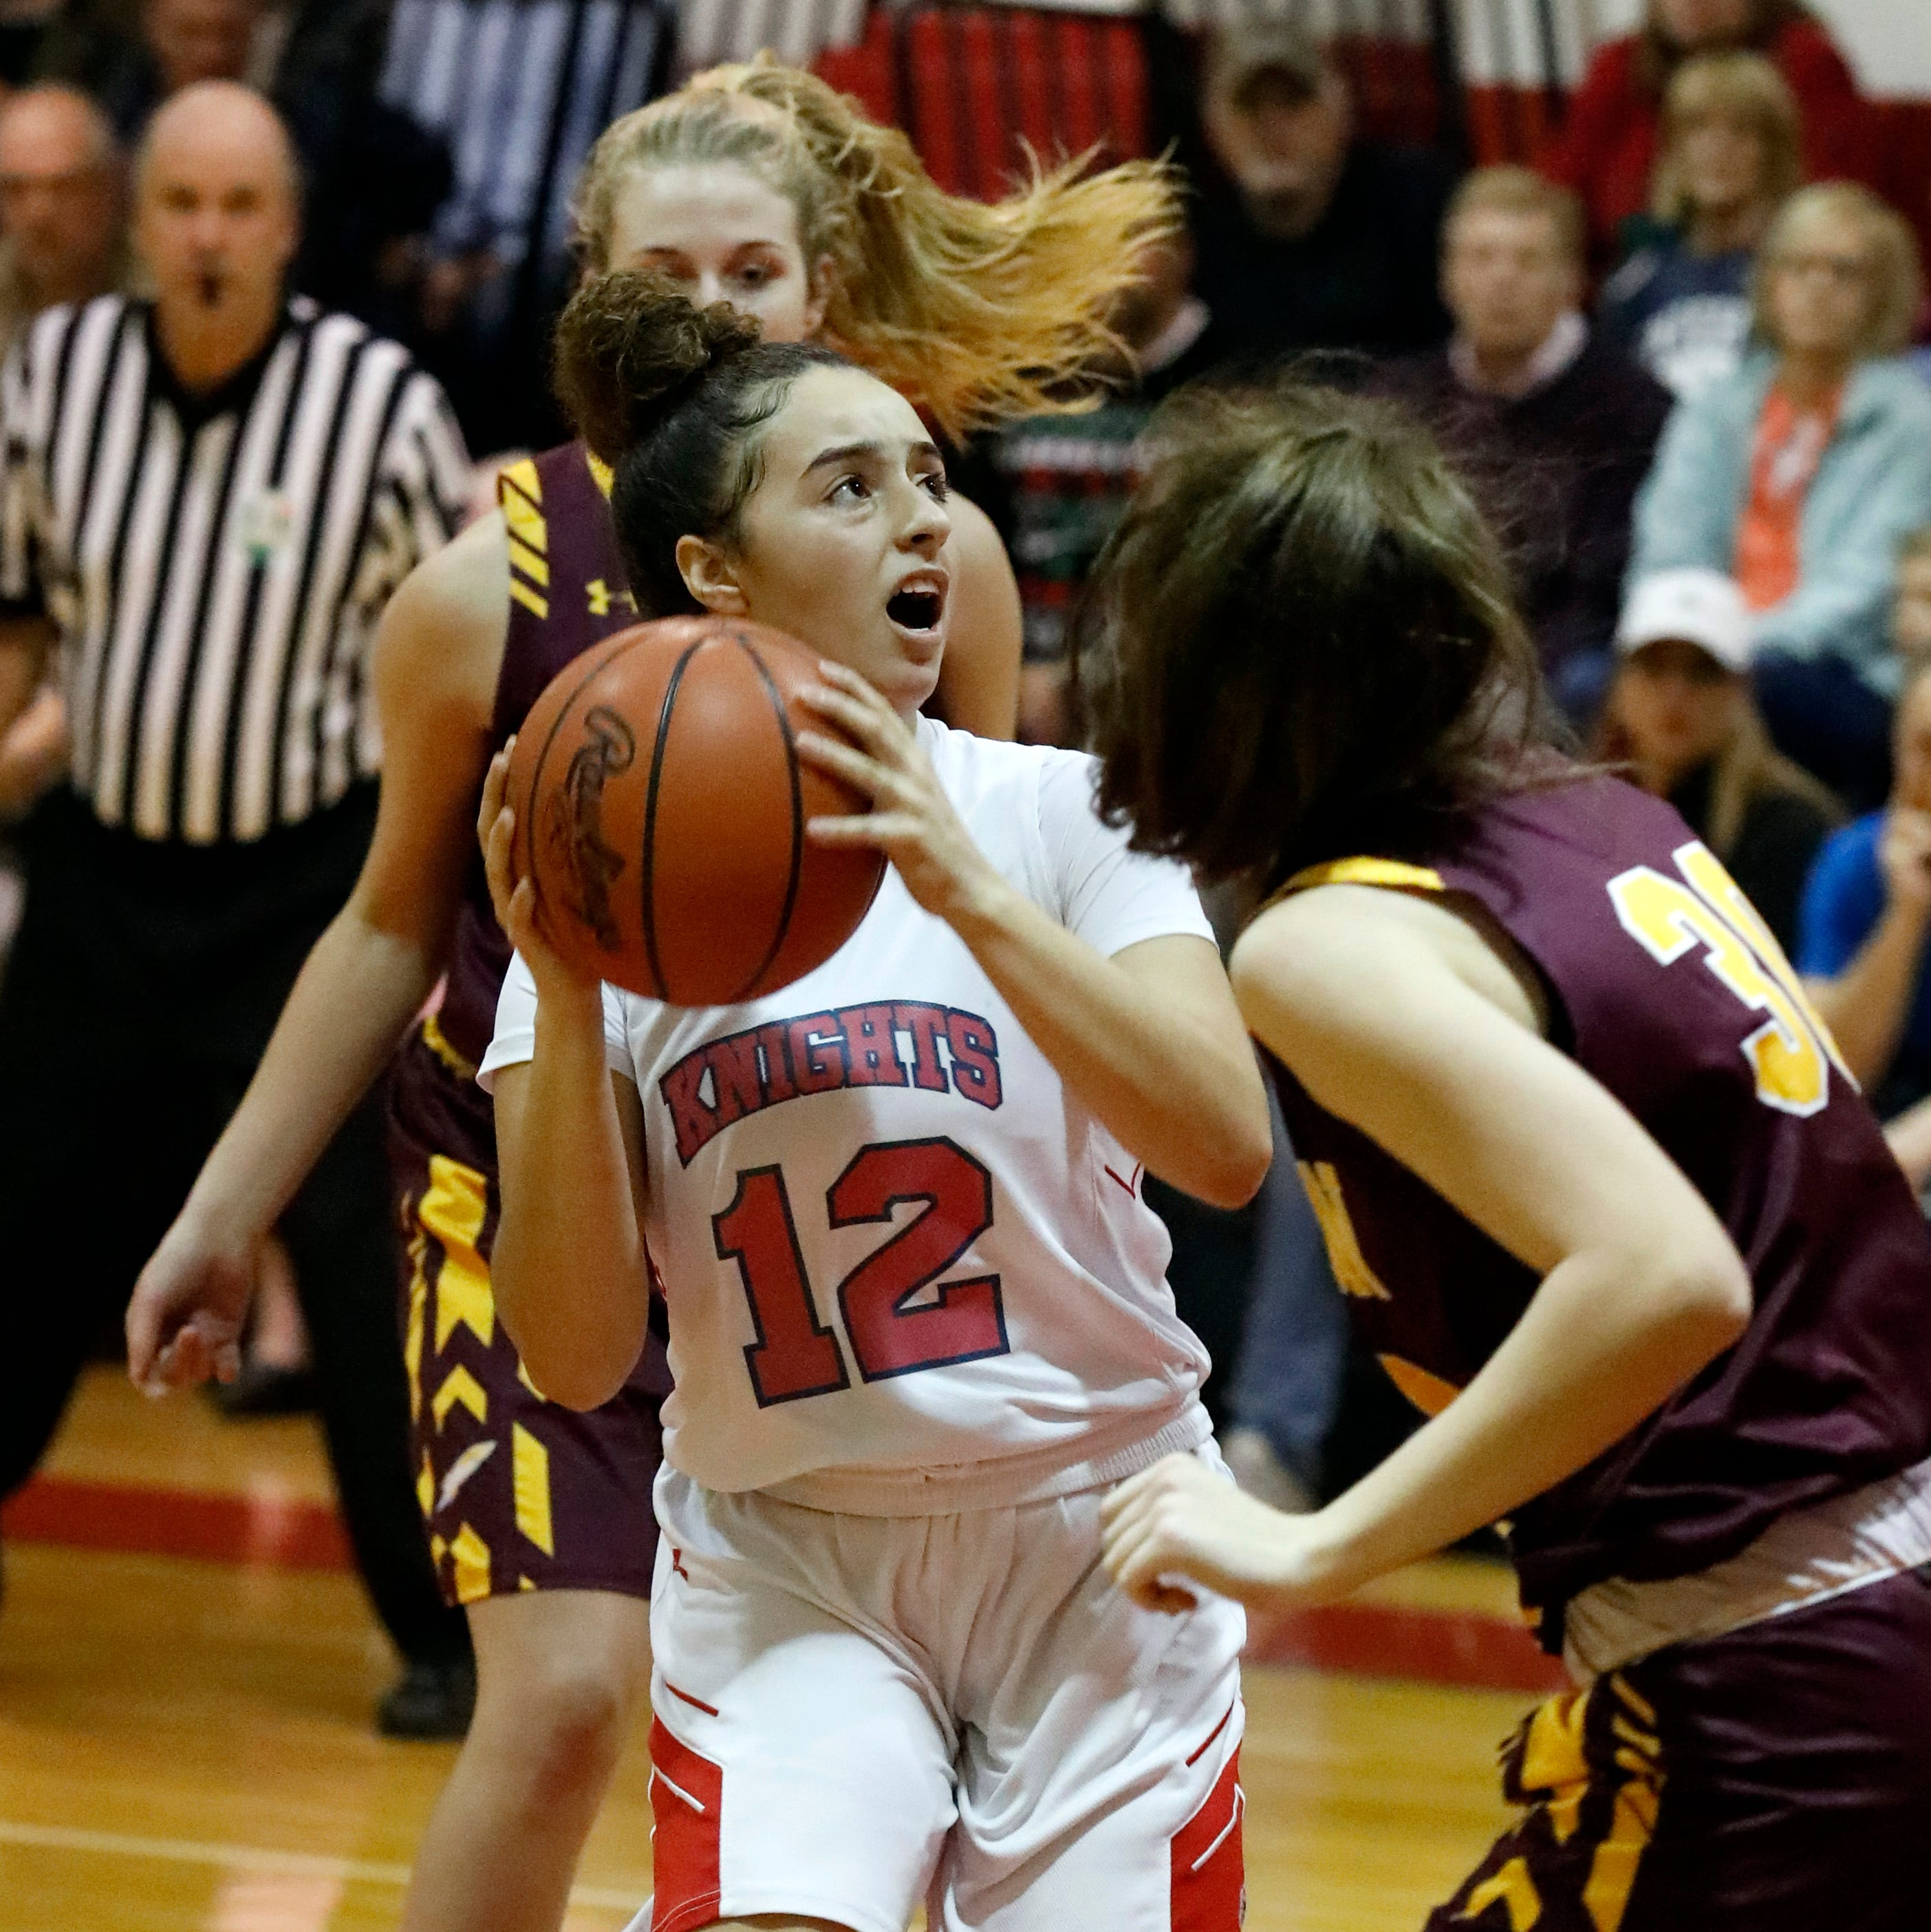 Seven area girls named to All-Ohio basketball teams, led by FCA's Mershimer